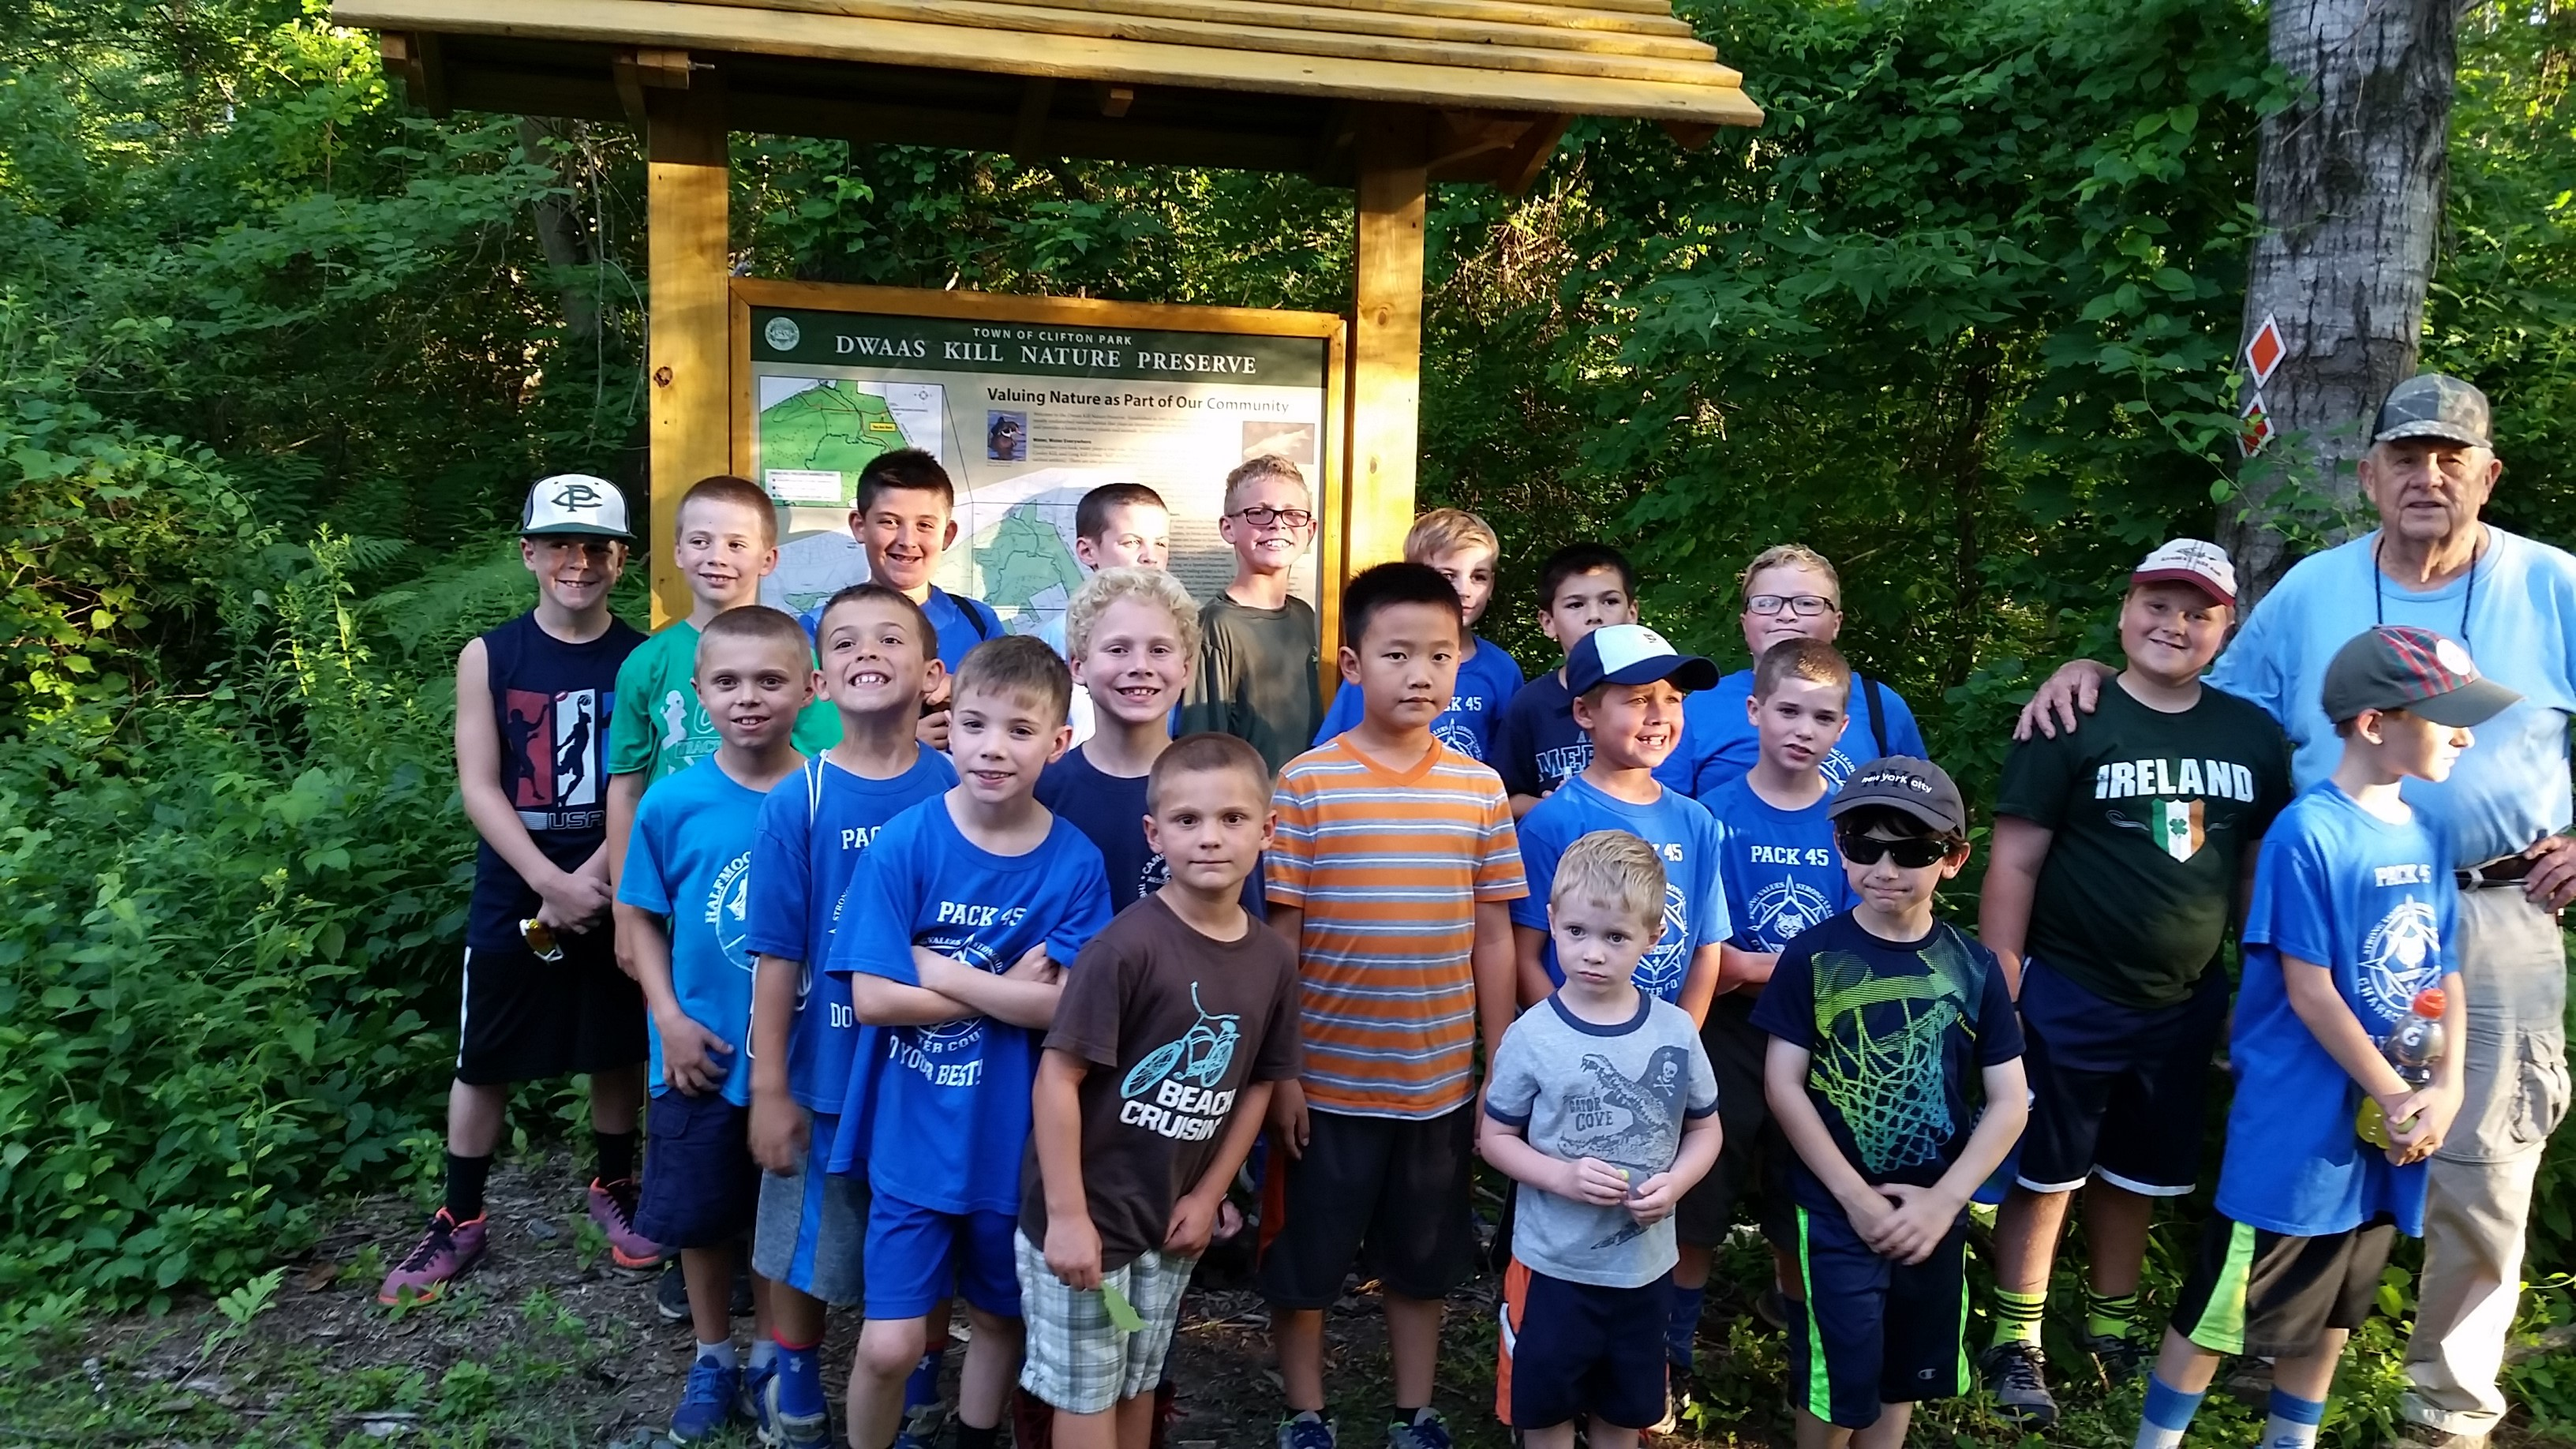 Cub Scouts Learn How to Estimate Tree Age at Dwaas Kill Nature Preserve